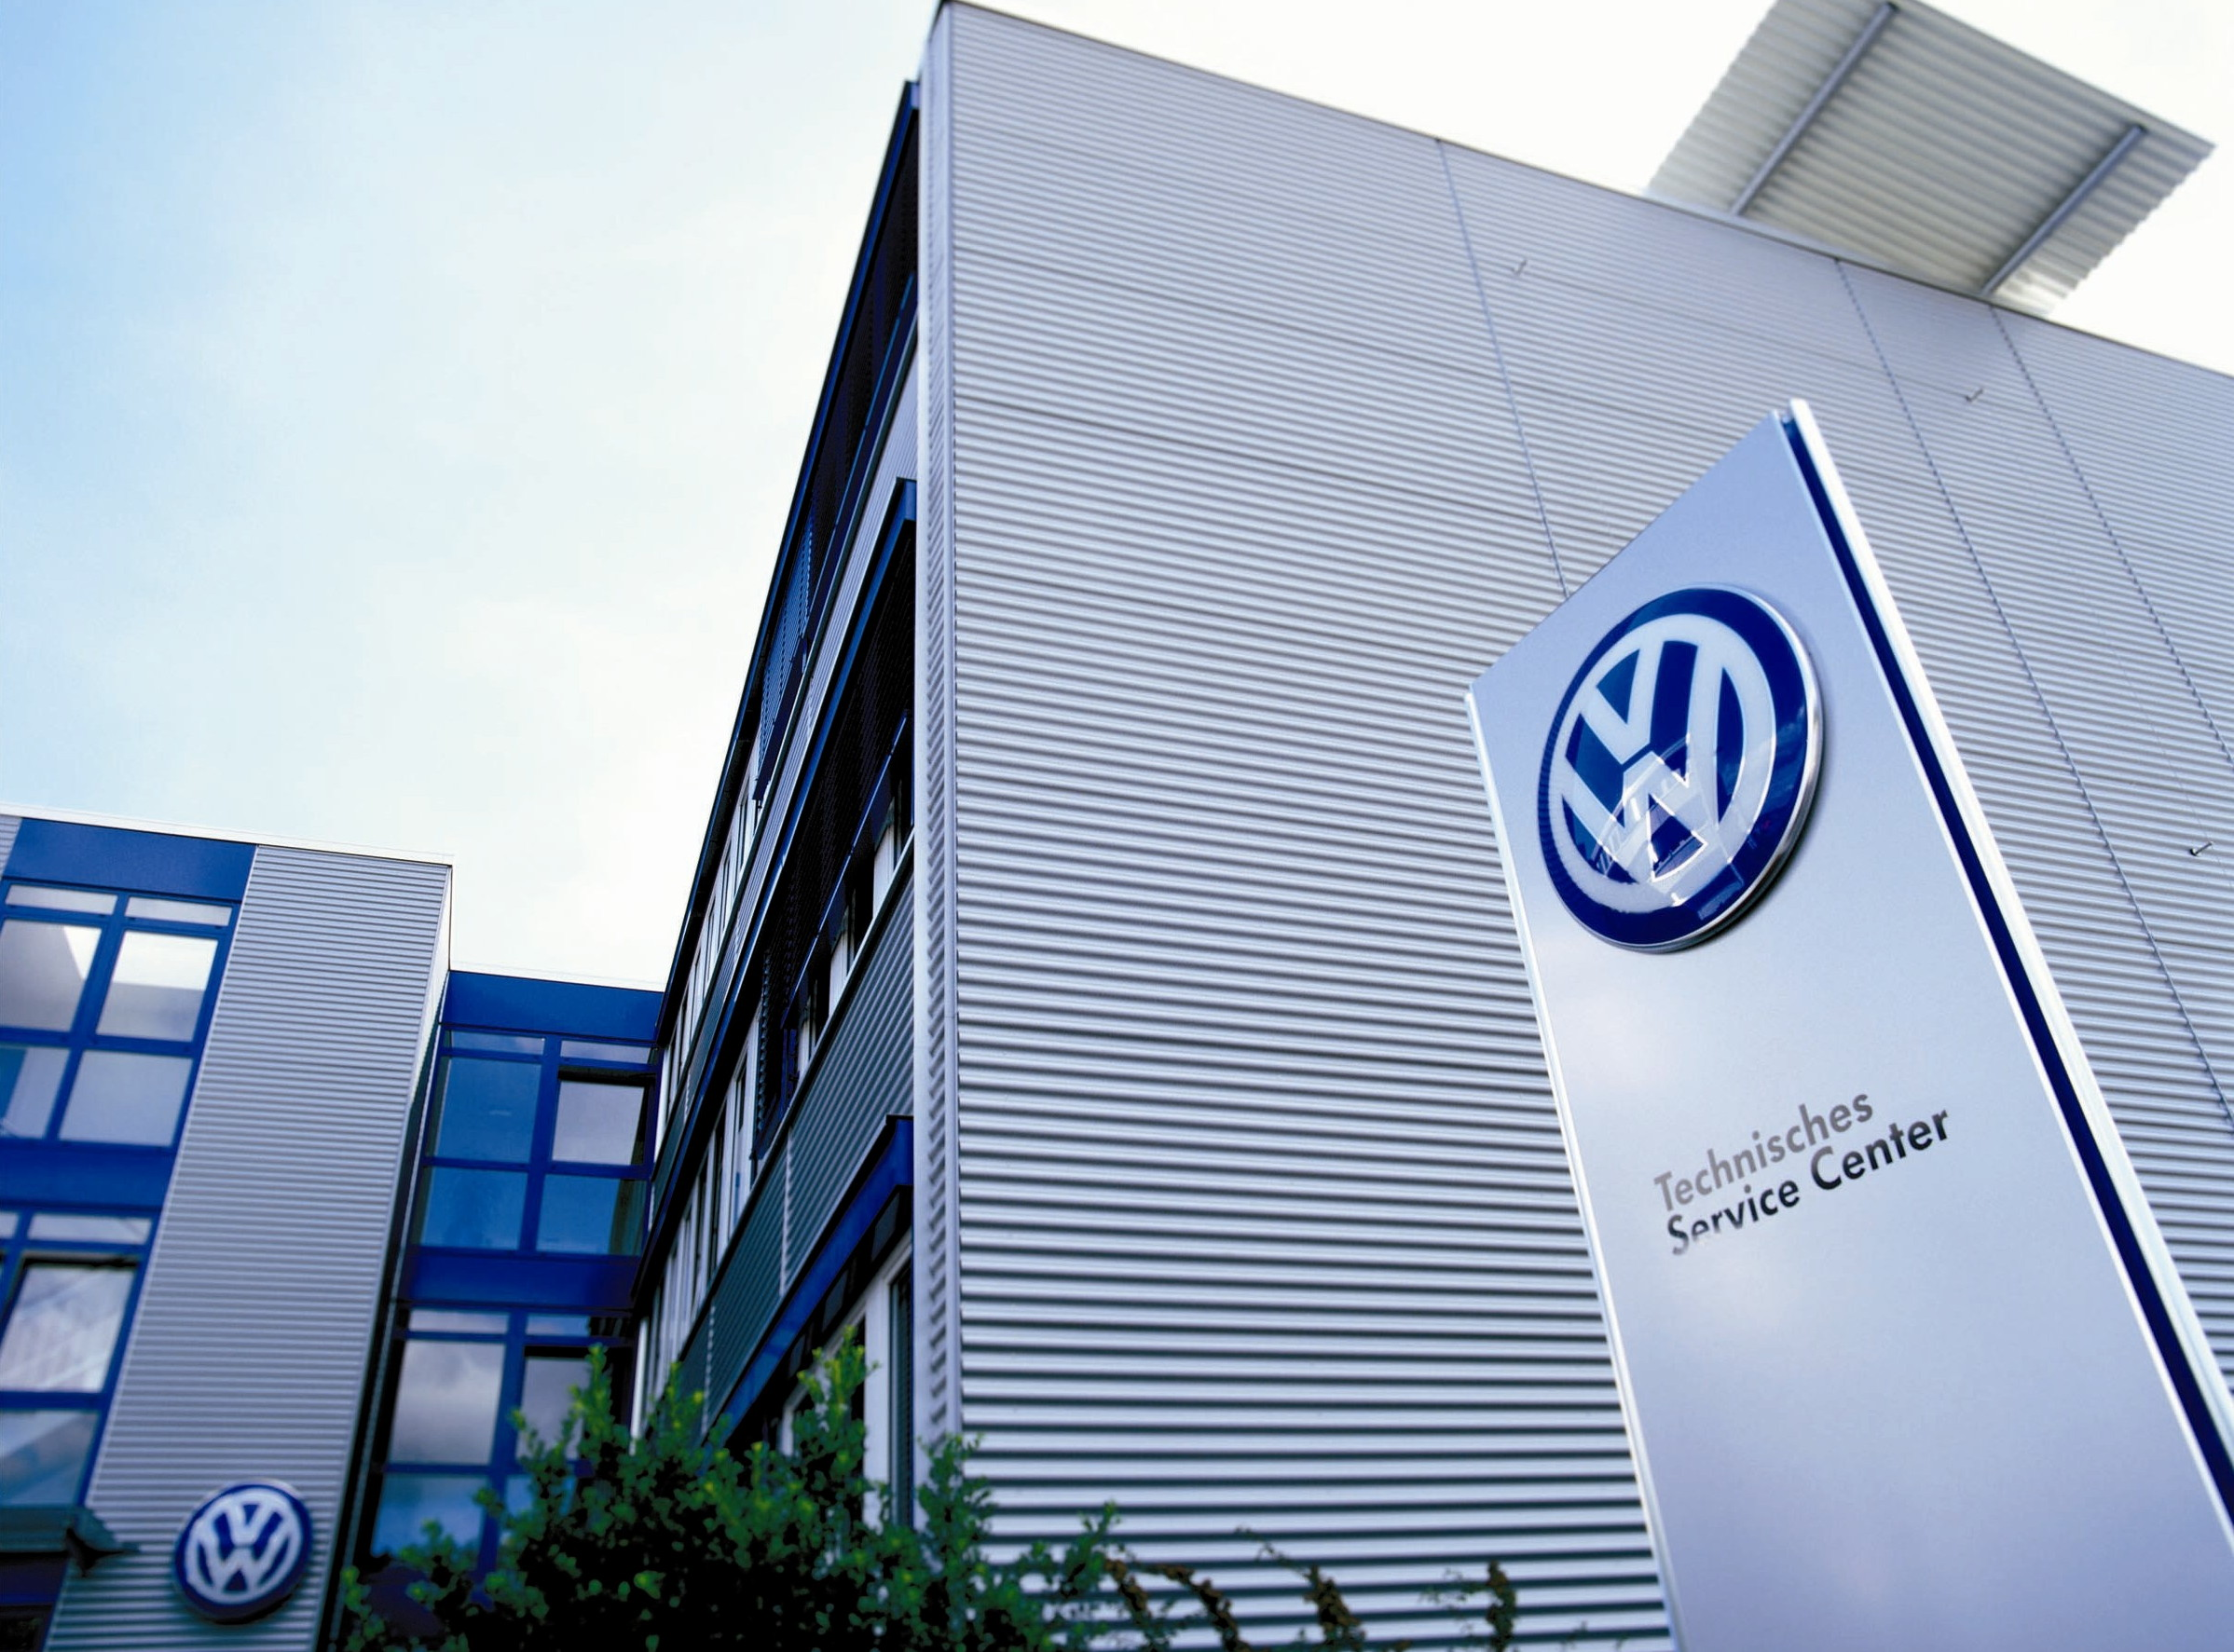 The most popular volkswagen models range over 80 years of touring cars, compacts cars and even racing cars. Volkswagen Dealerships Healthy Looking Ahead To U S Built Cars